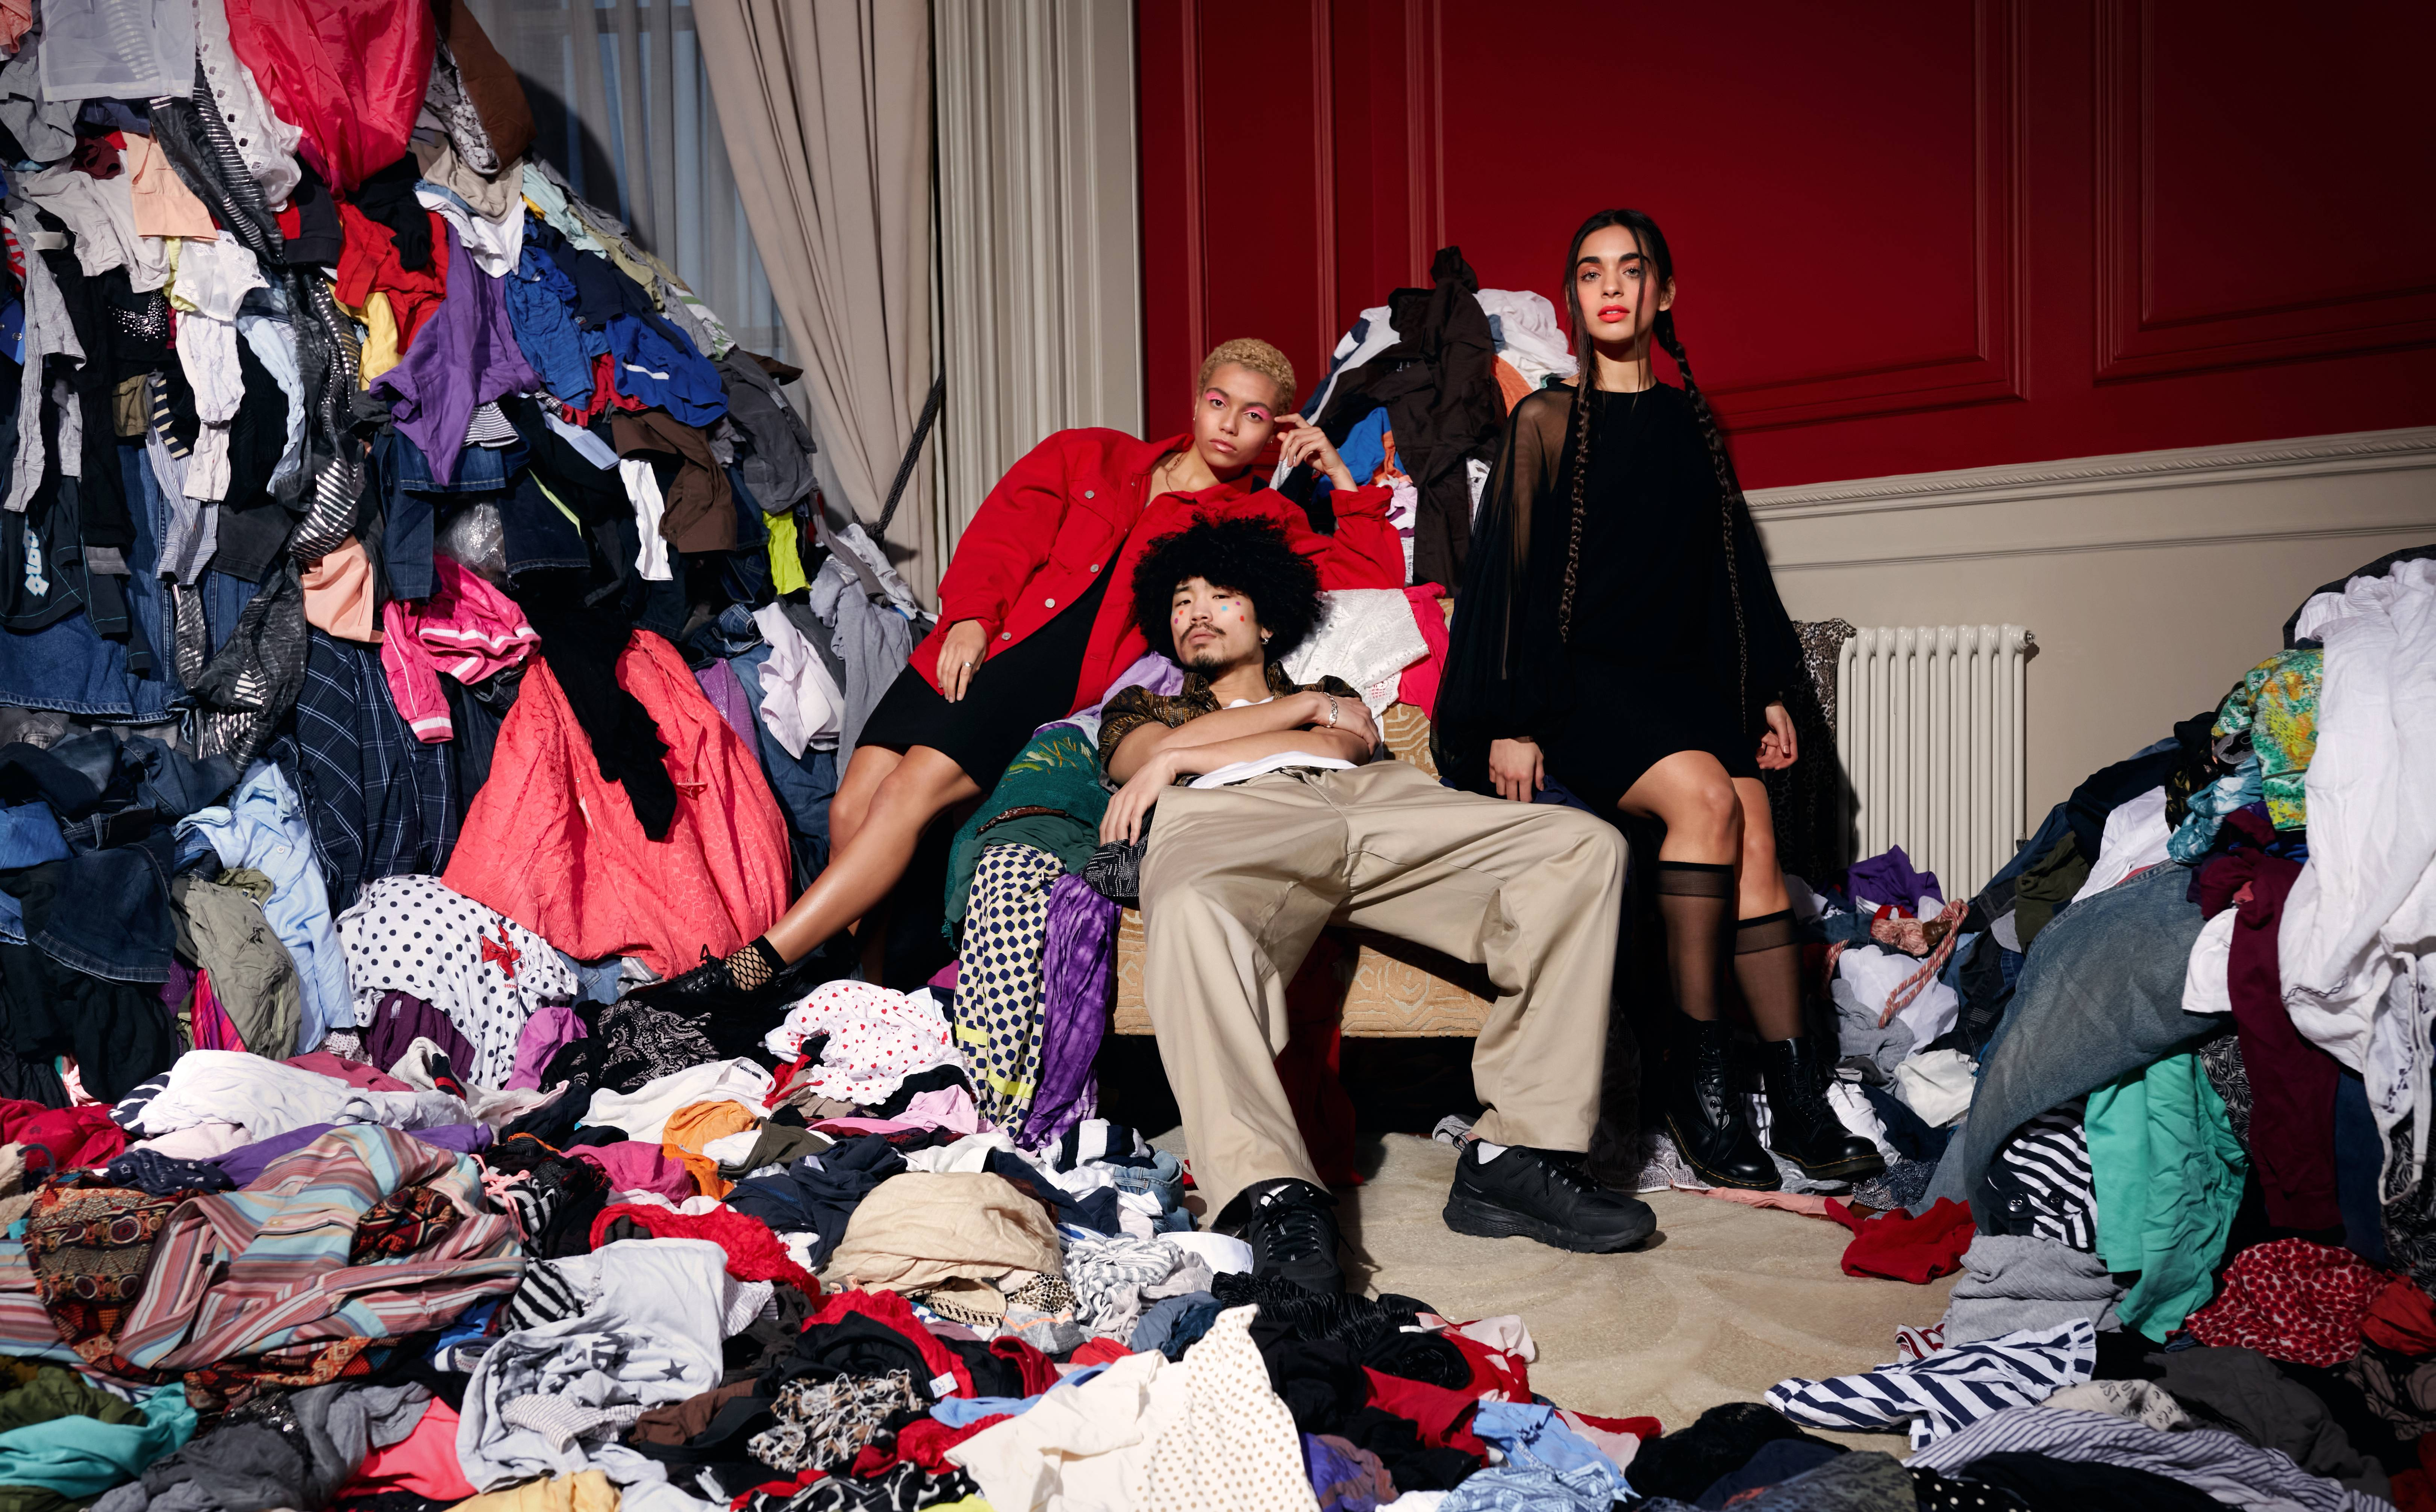 Vanish partners with the British Fashion Council to highlight throwaway fashion